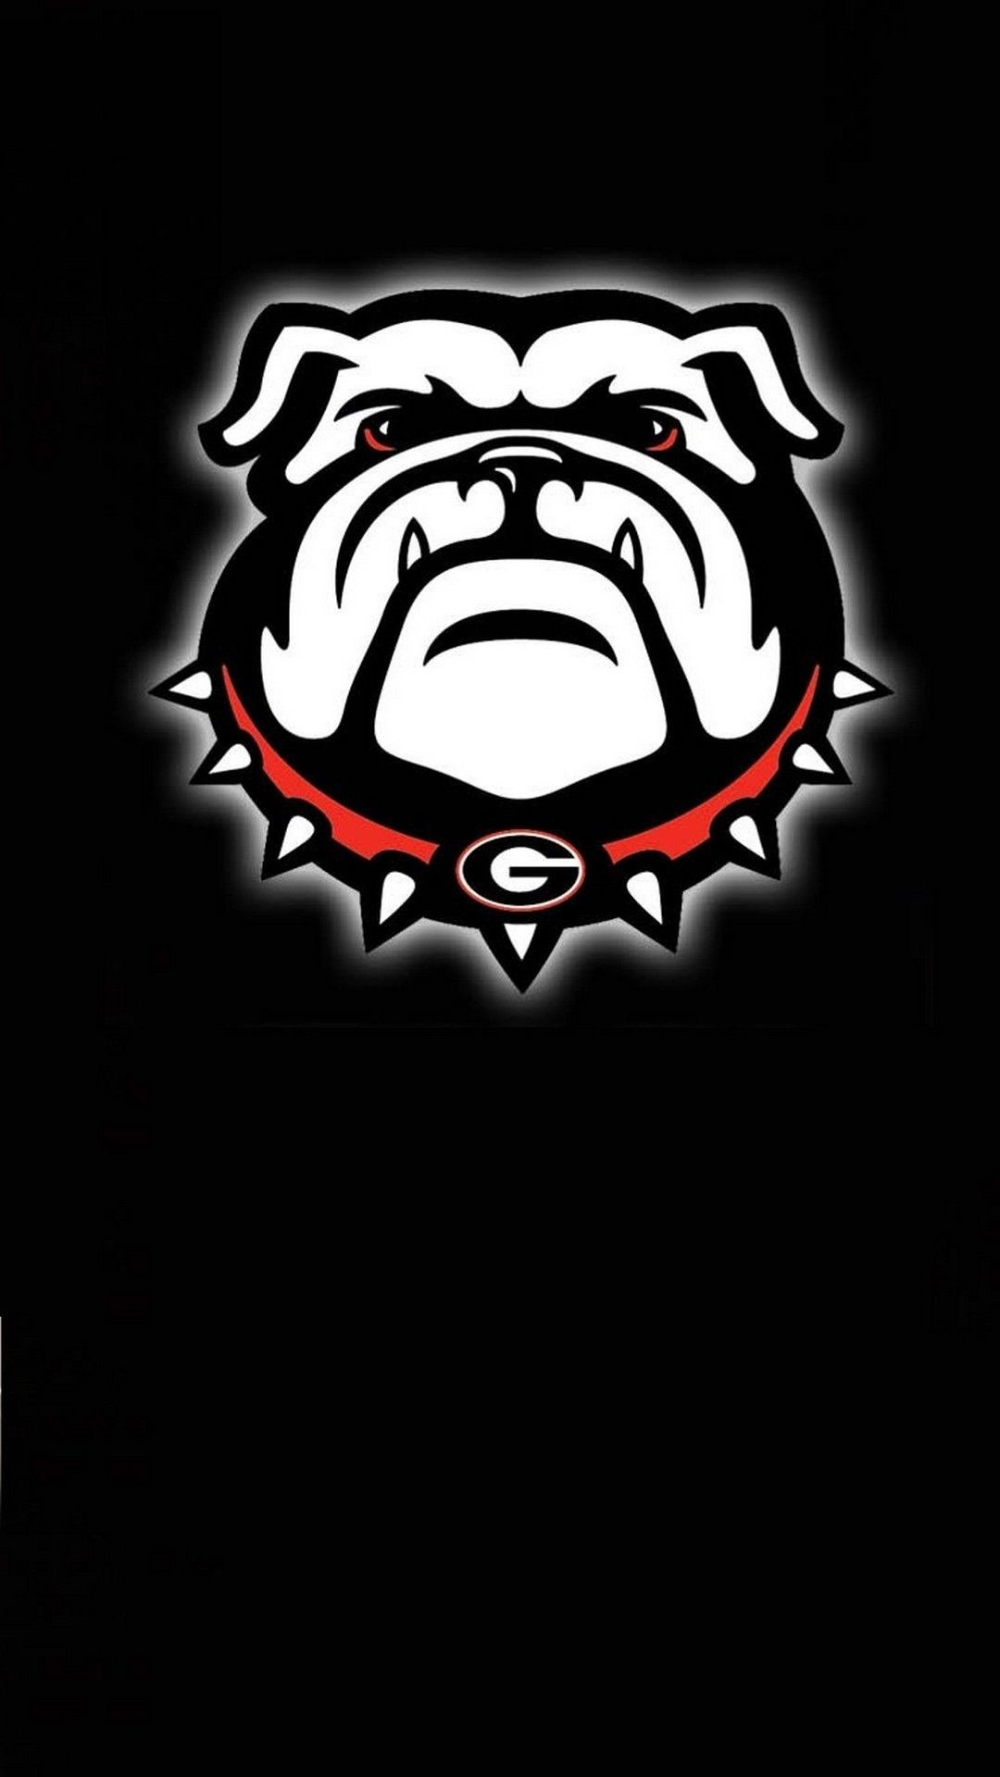 Bulldogs Wallpapers in 2020 (With images) Bulldog